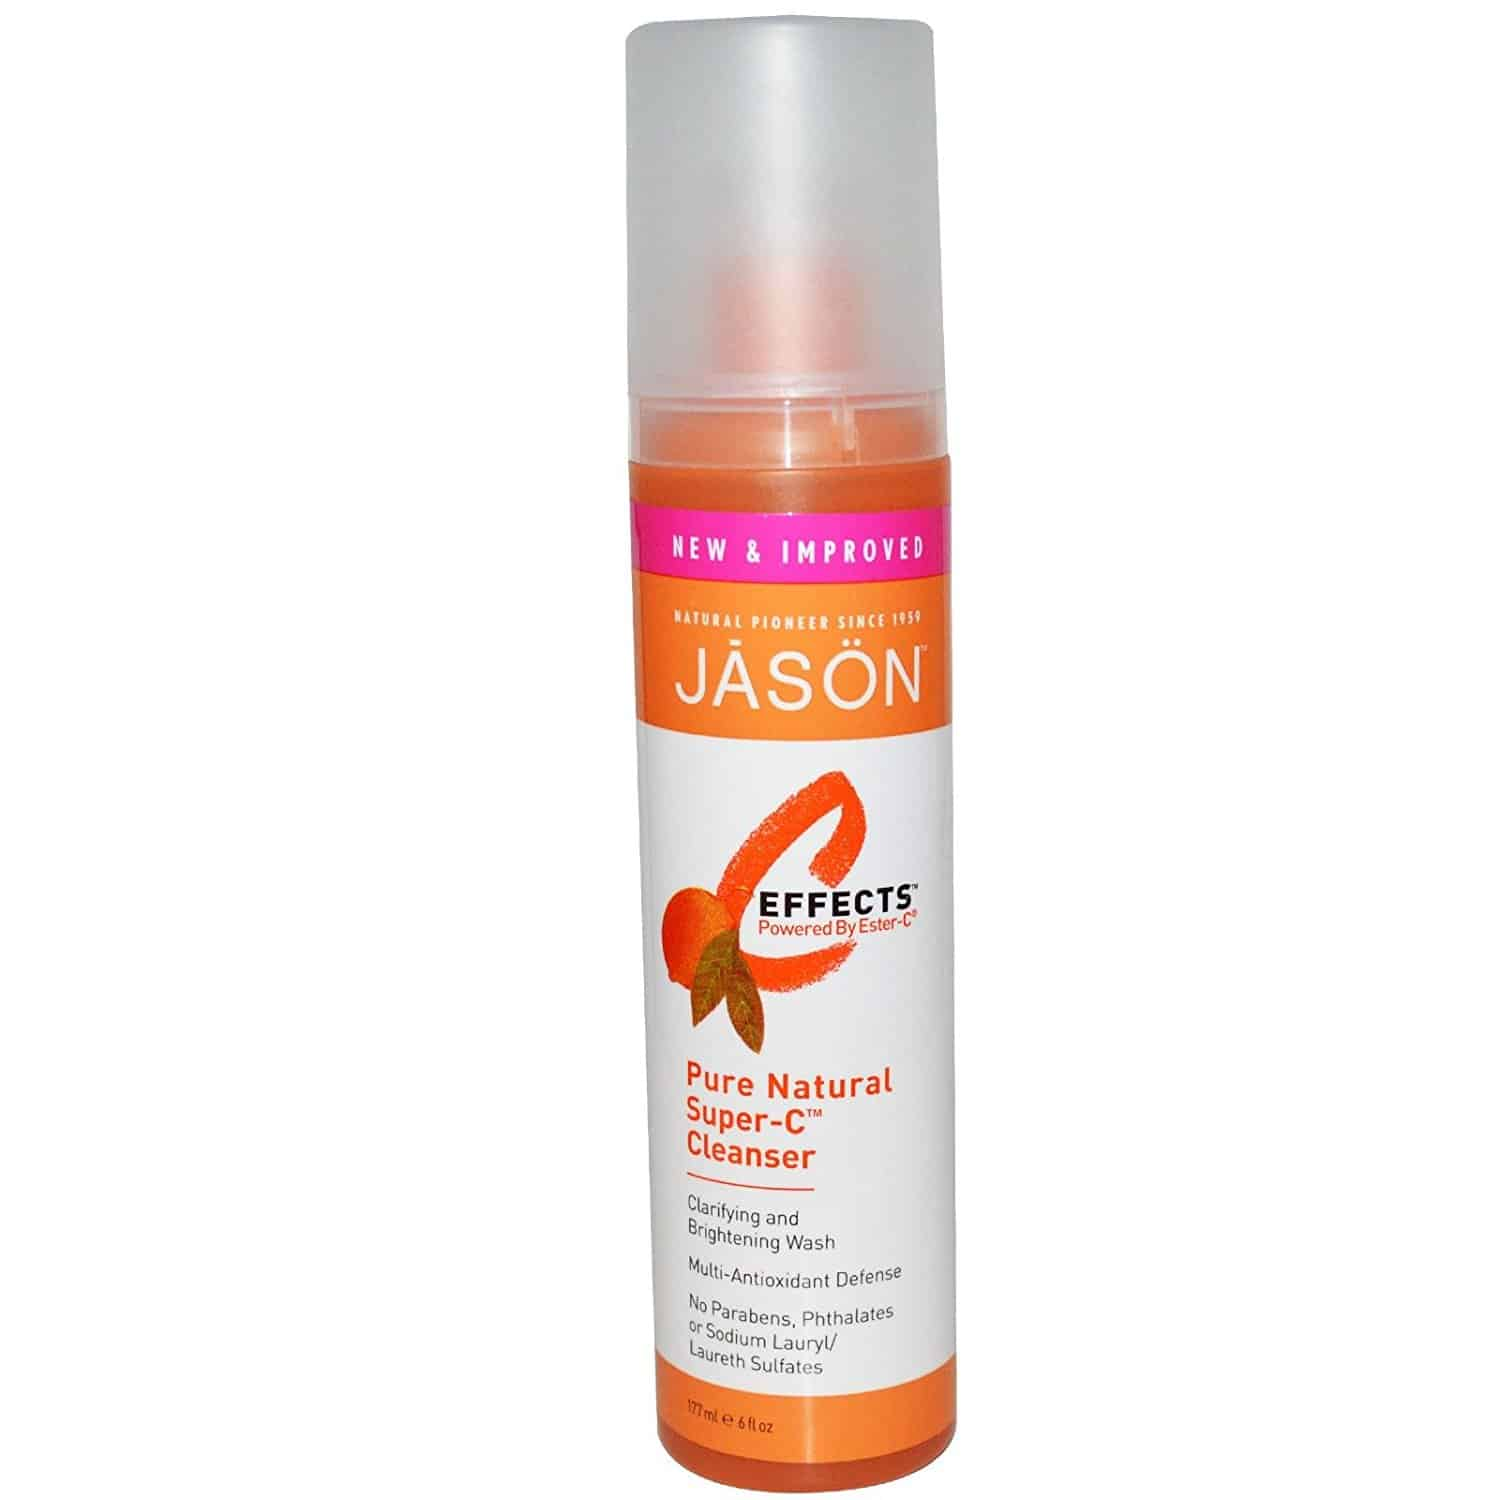 Jason Super C Cleanser